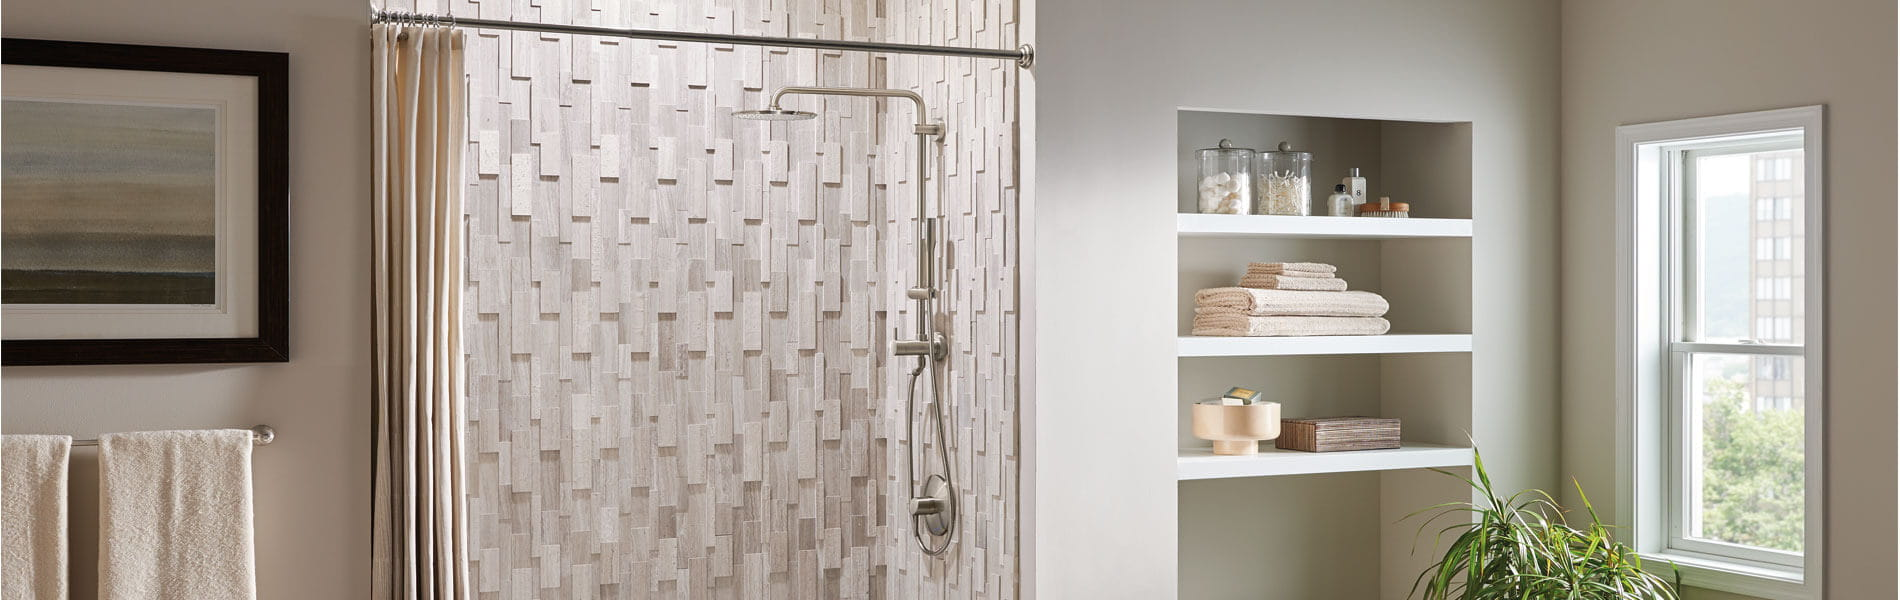 Euphoria cosmopolitan shower with a wooden panel shower tile background.